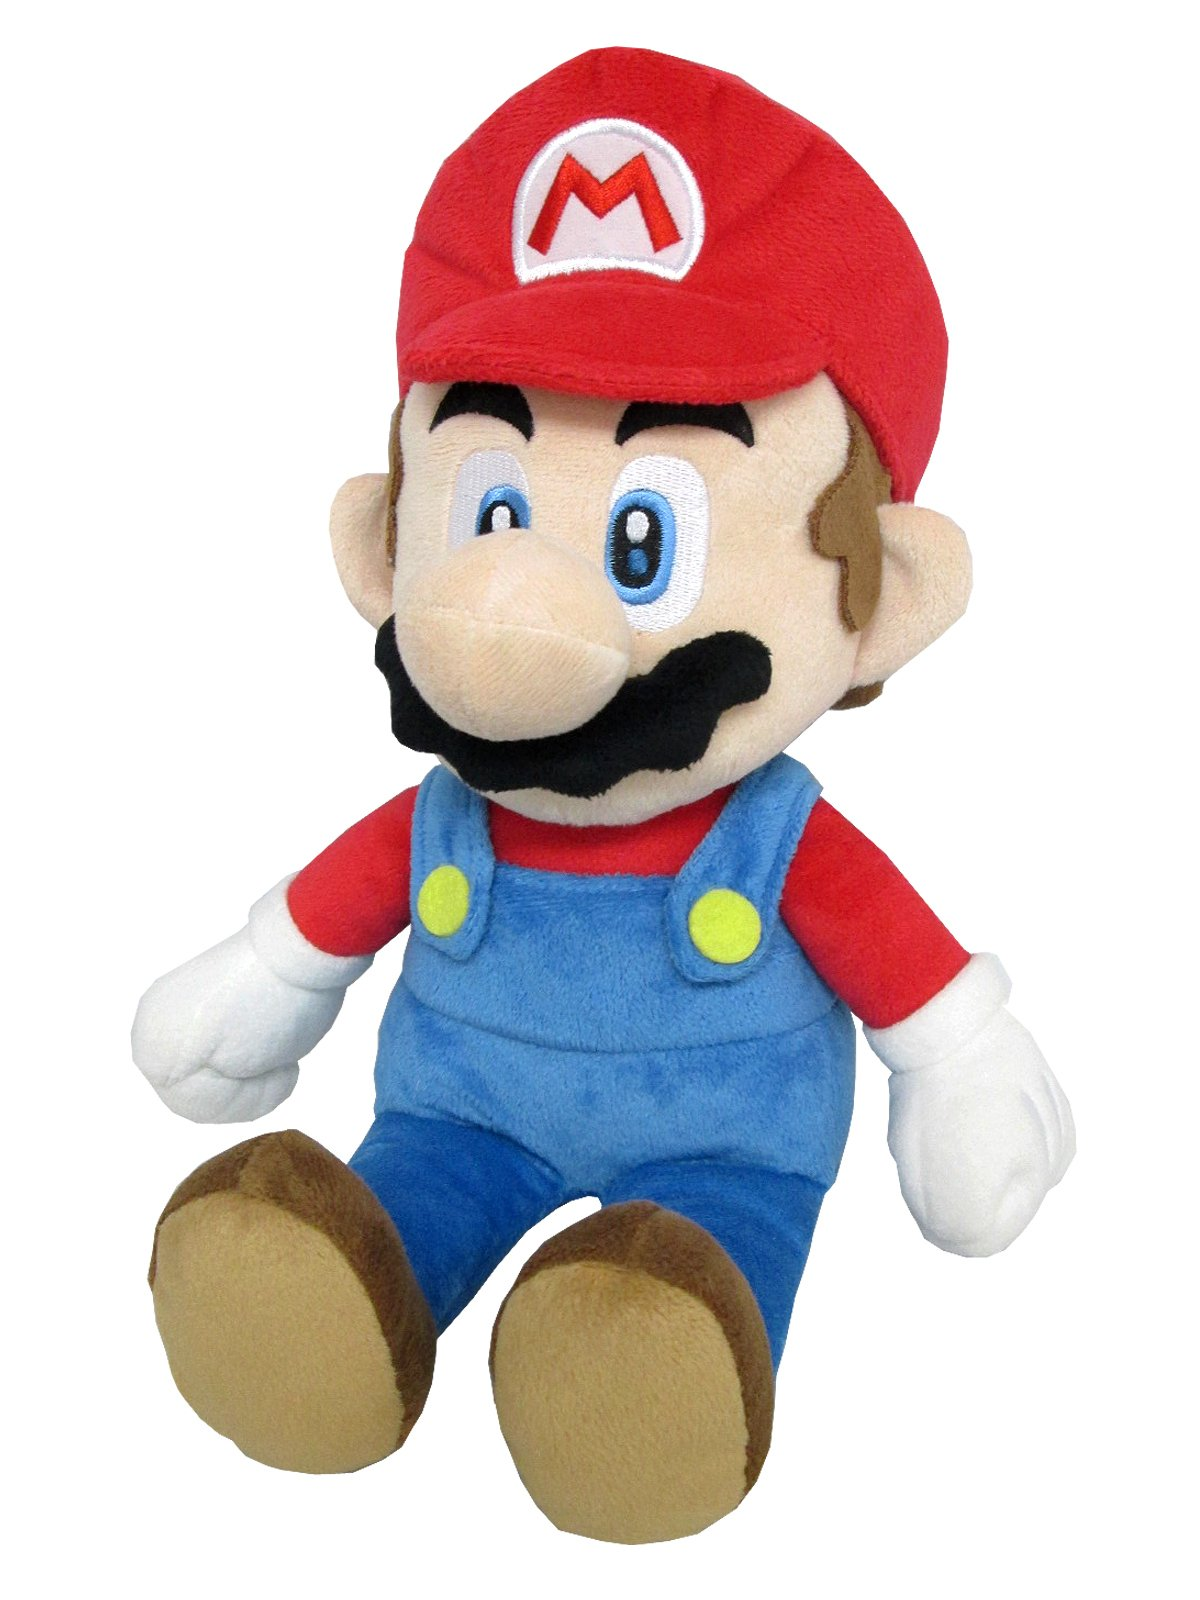 Little Buddy 1583 Super Mario All Star Collection - 1583 - Mario Medium Stuffed Plush, 14'' by Little Buddy